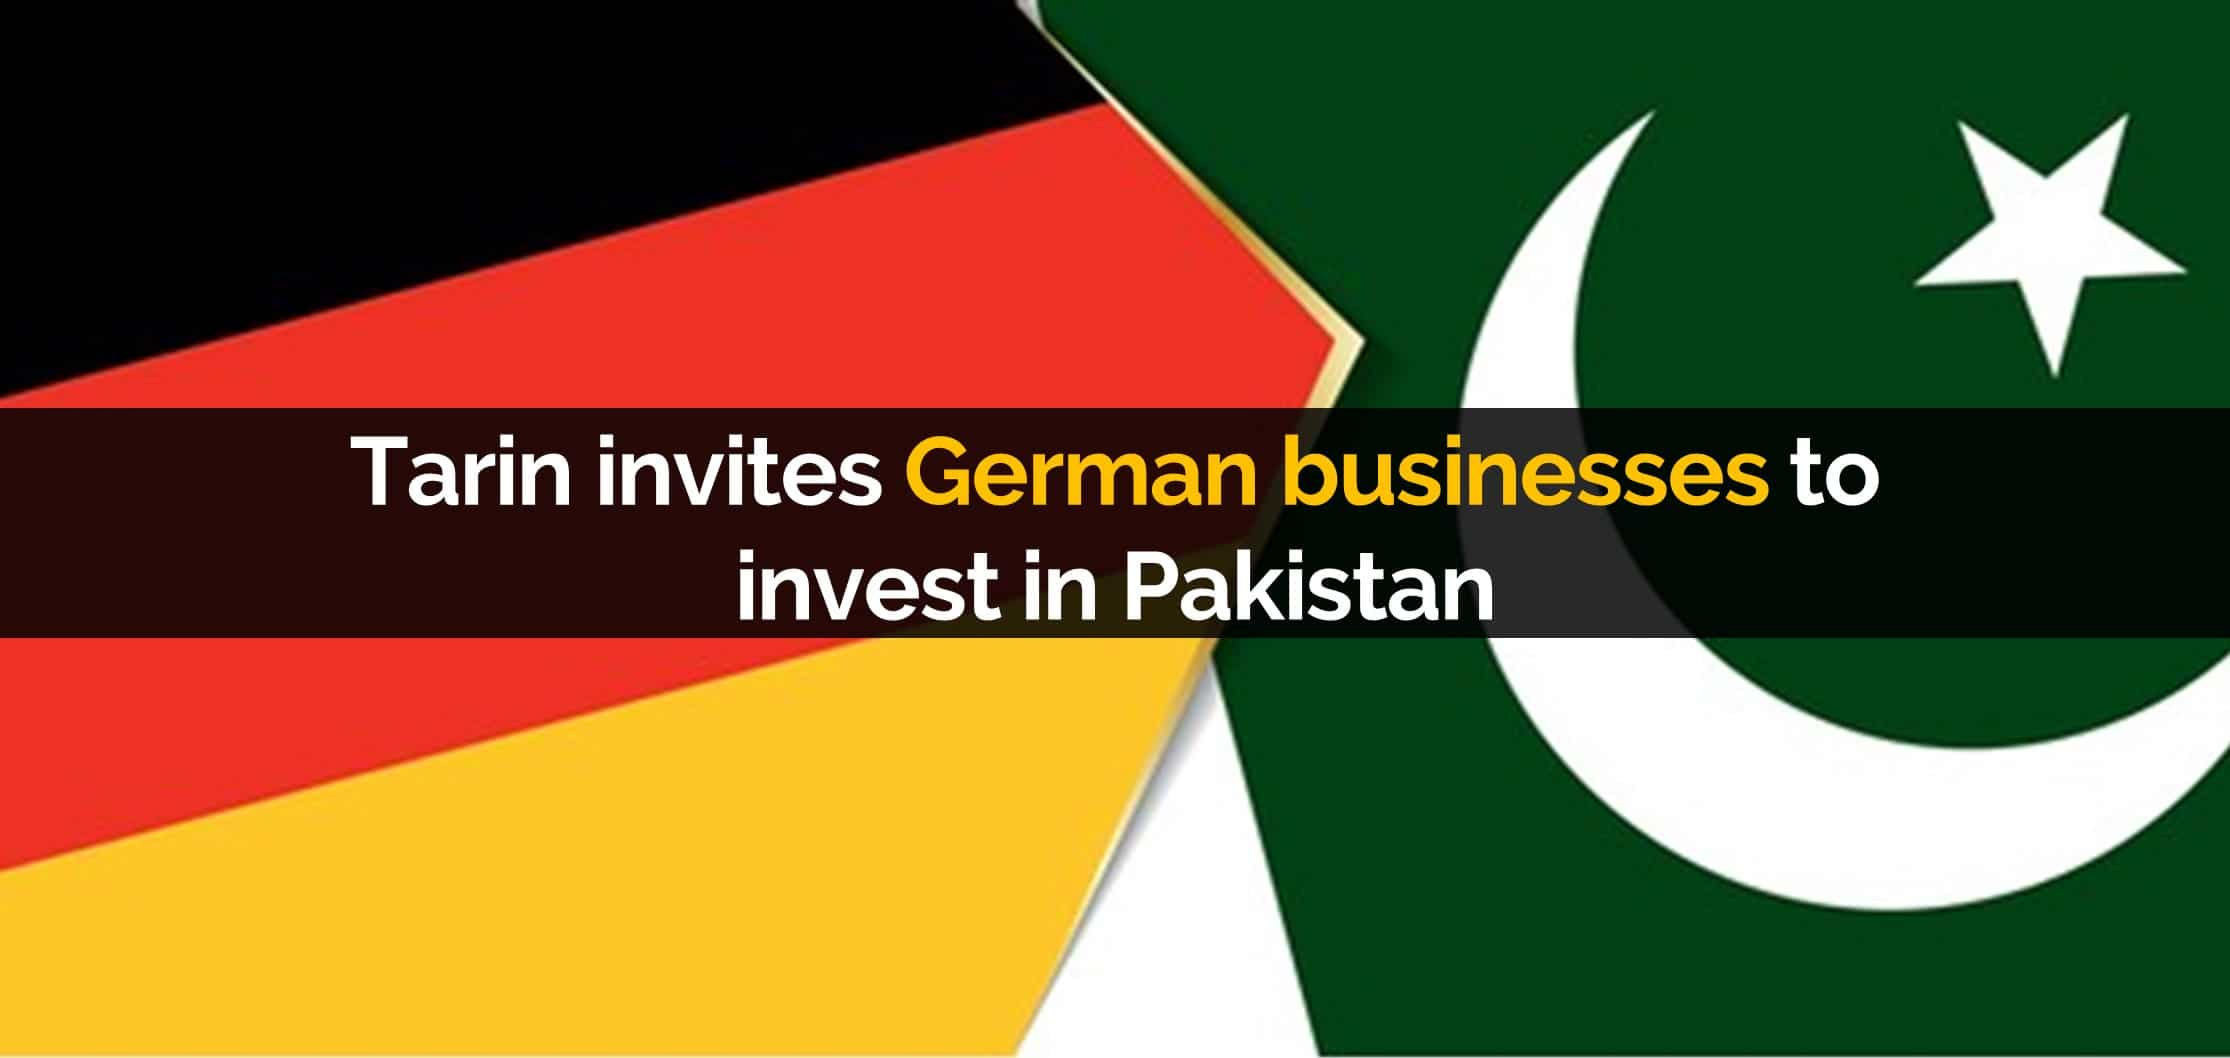 Tarin invites German businesses to invest in Pakistan